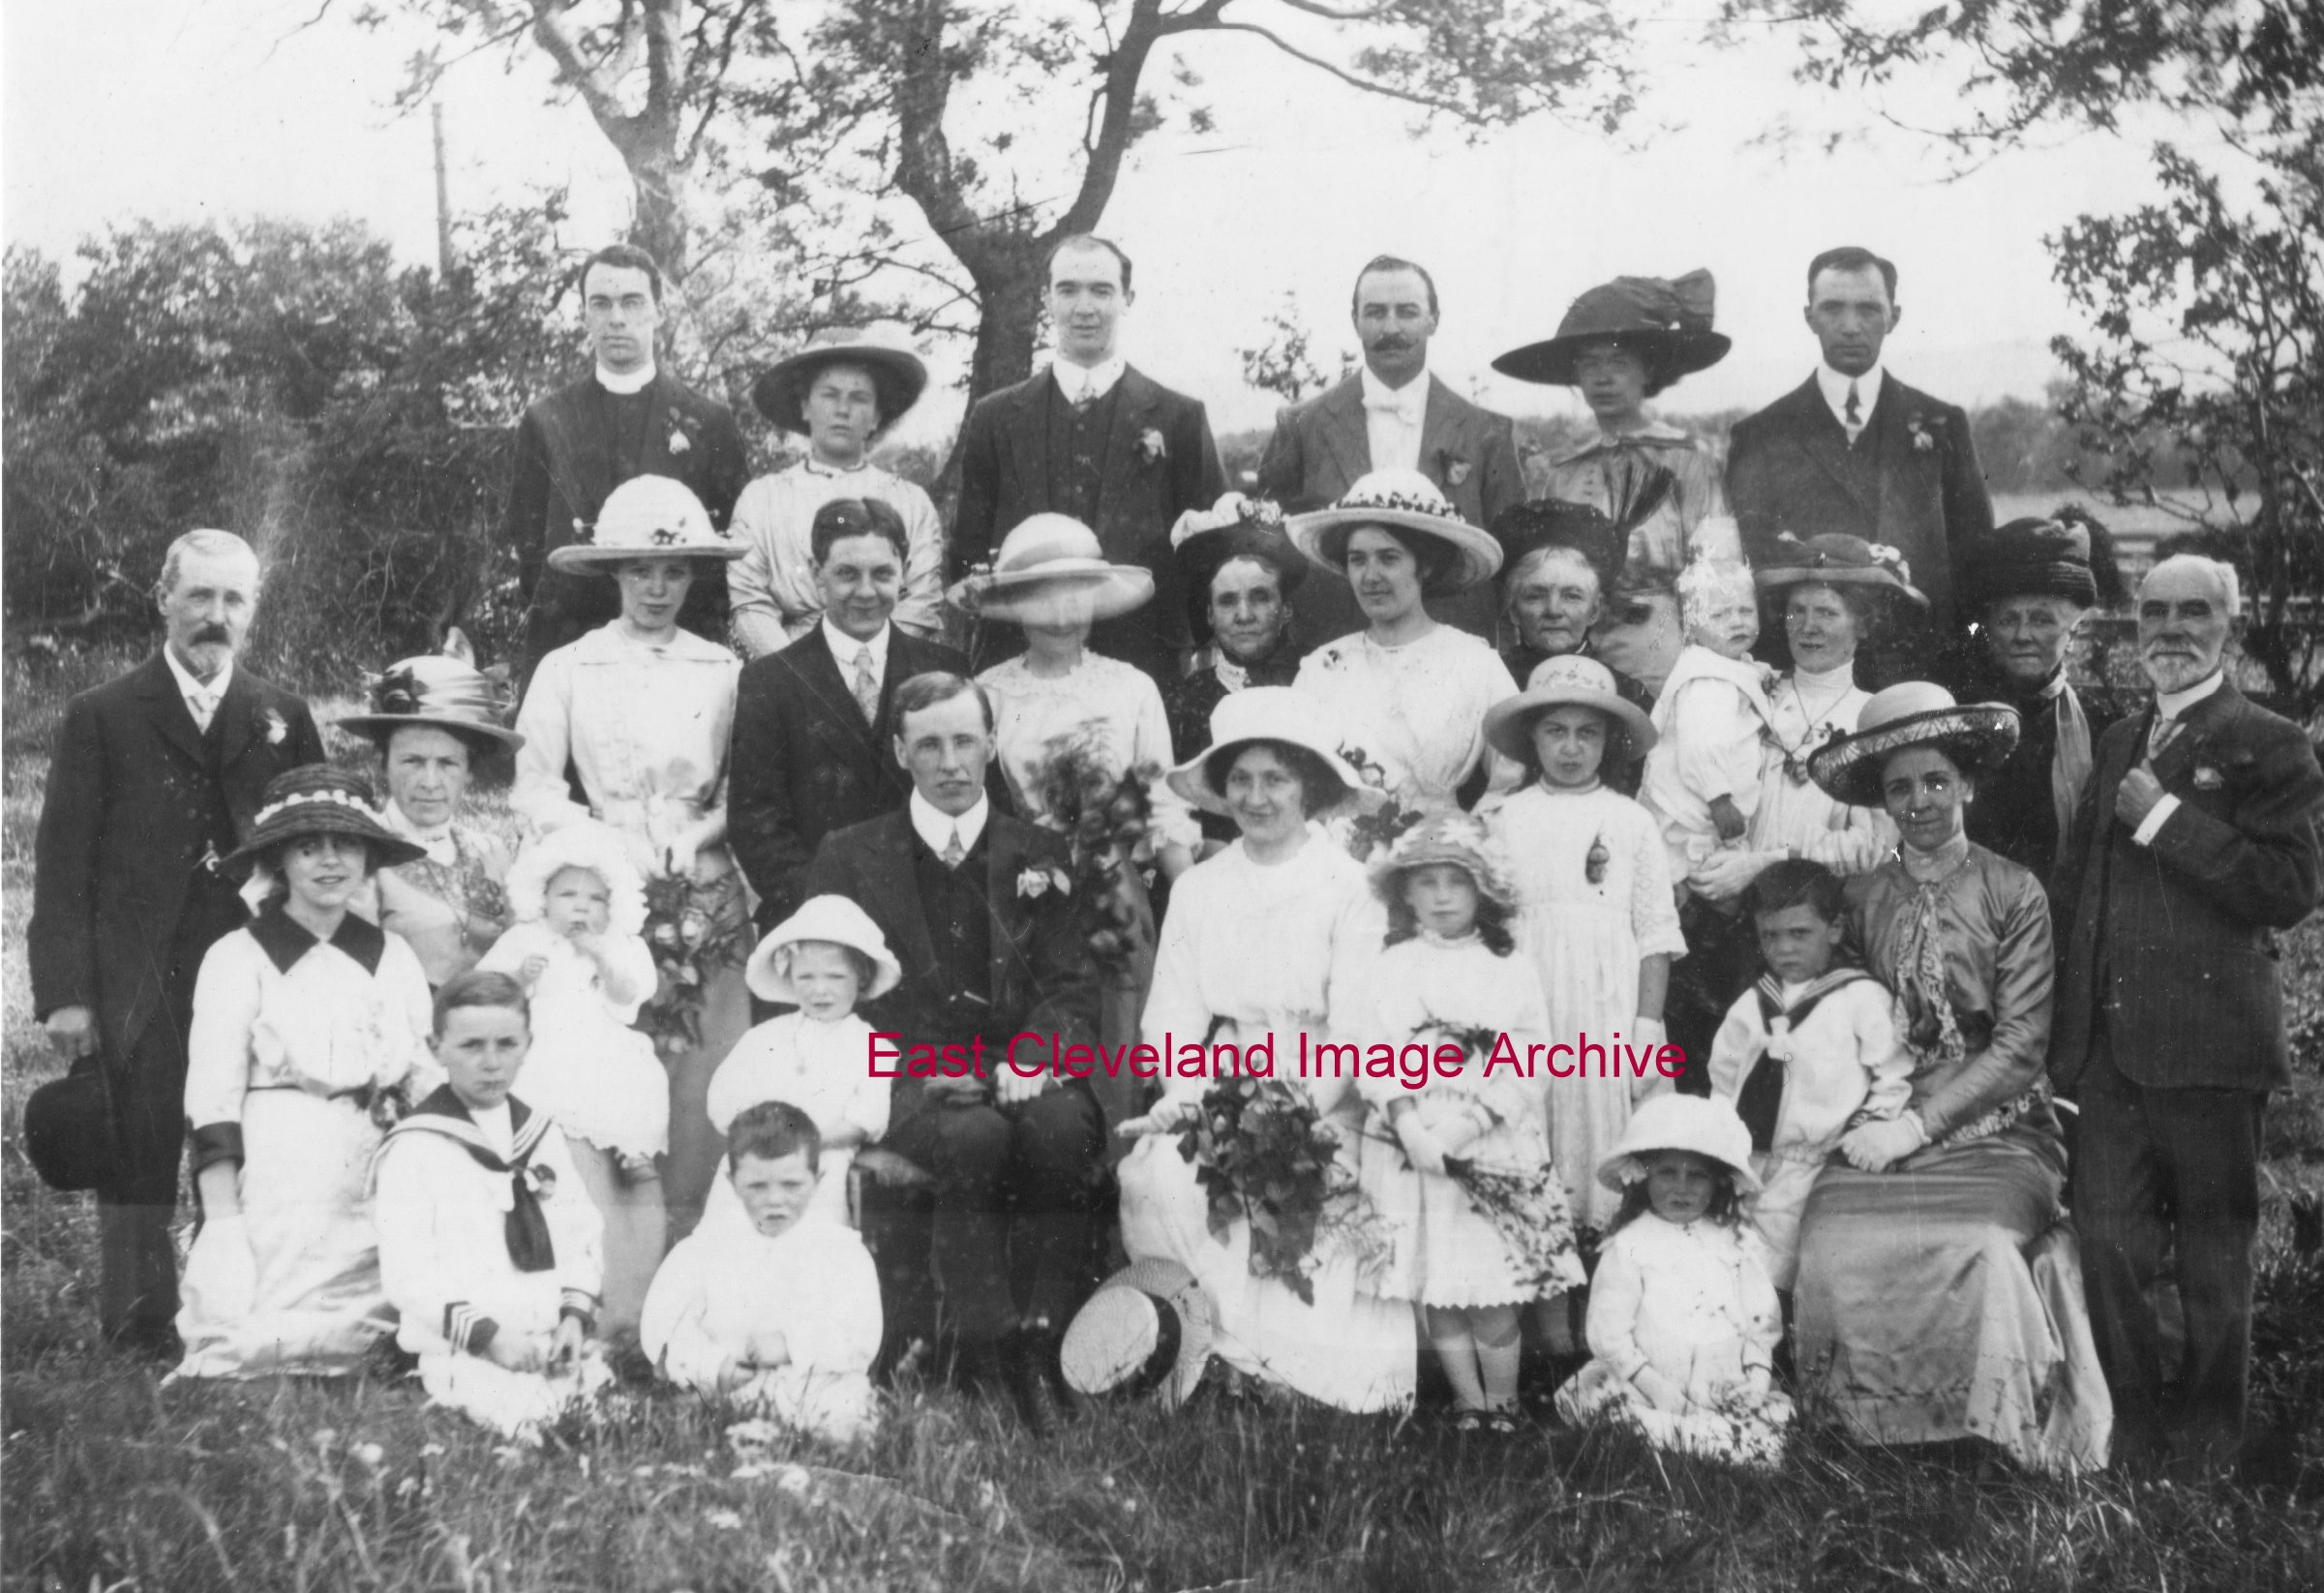 A family wedding 1913